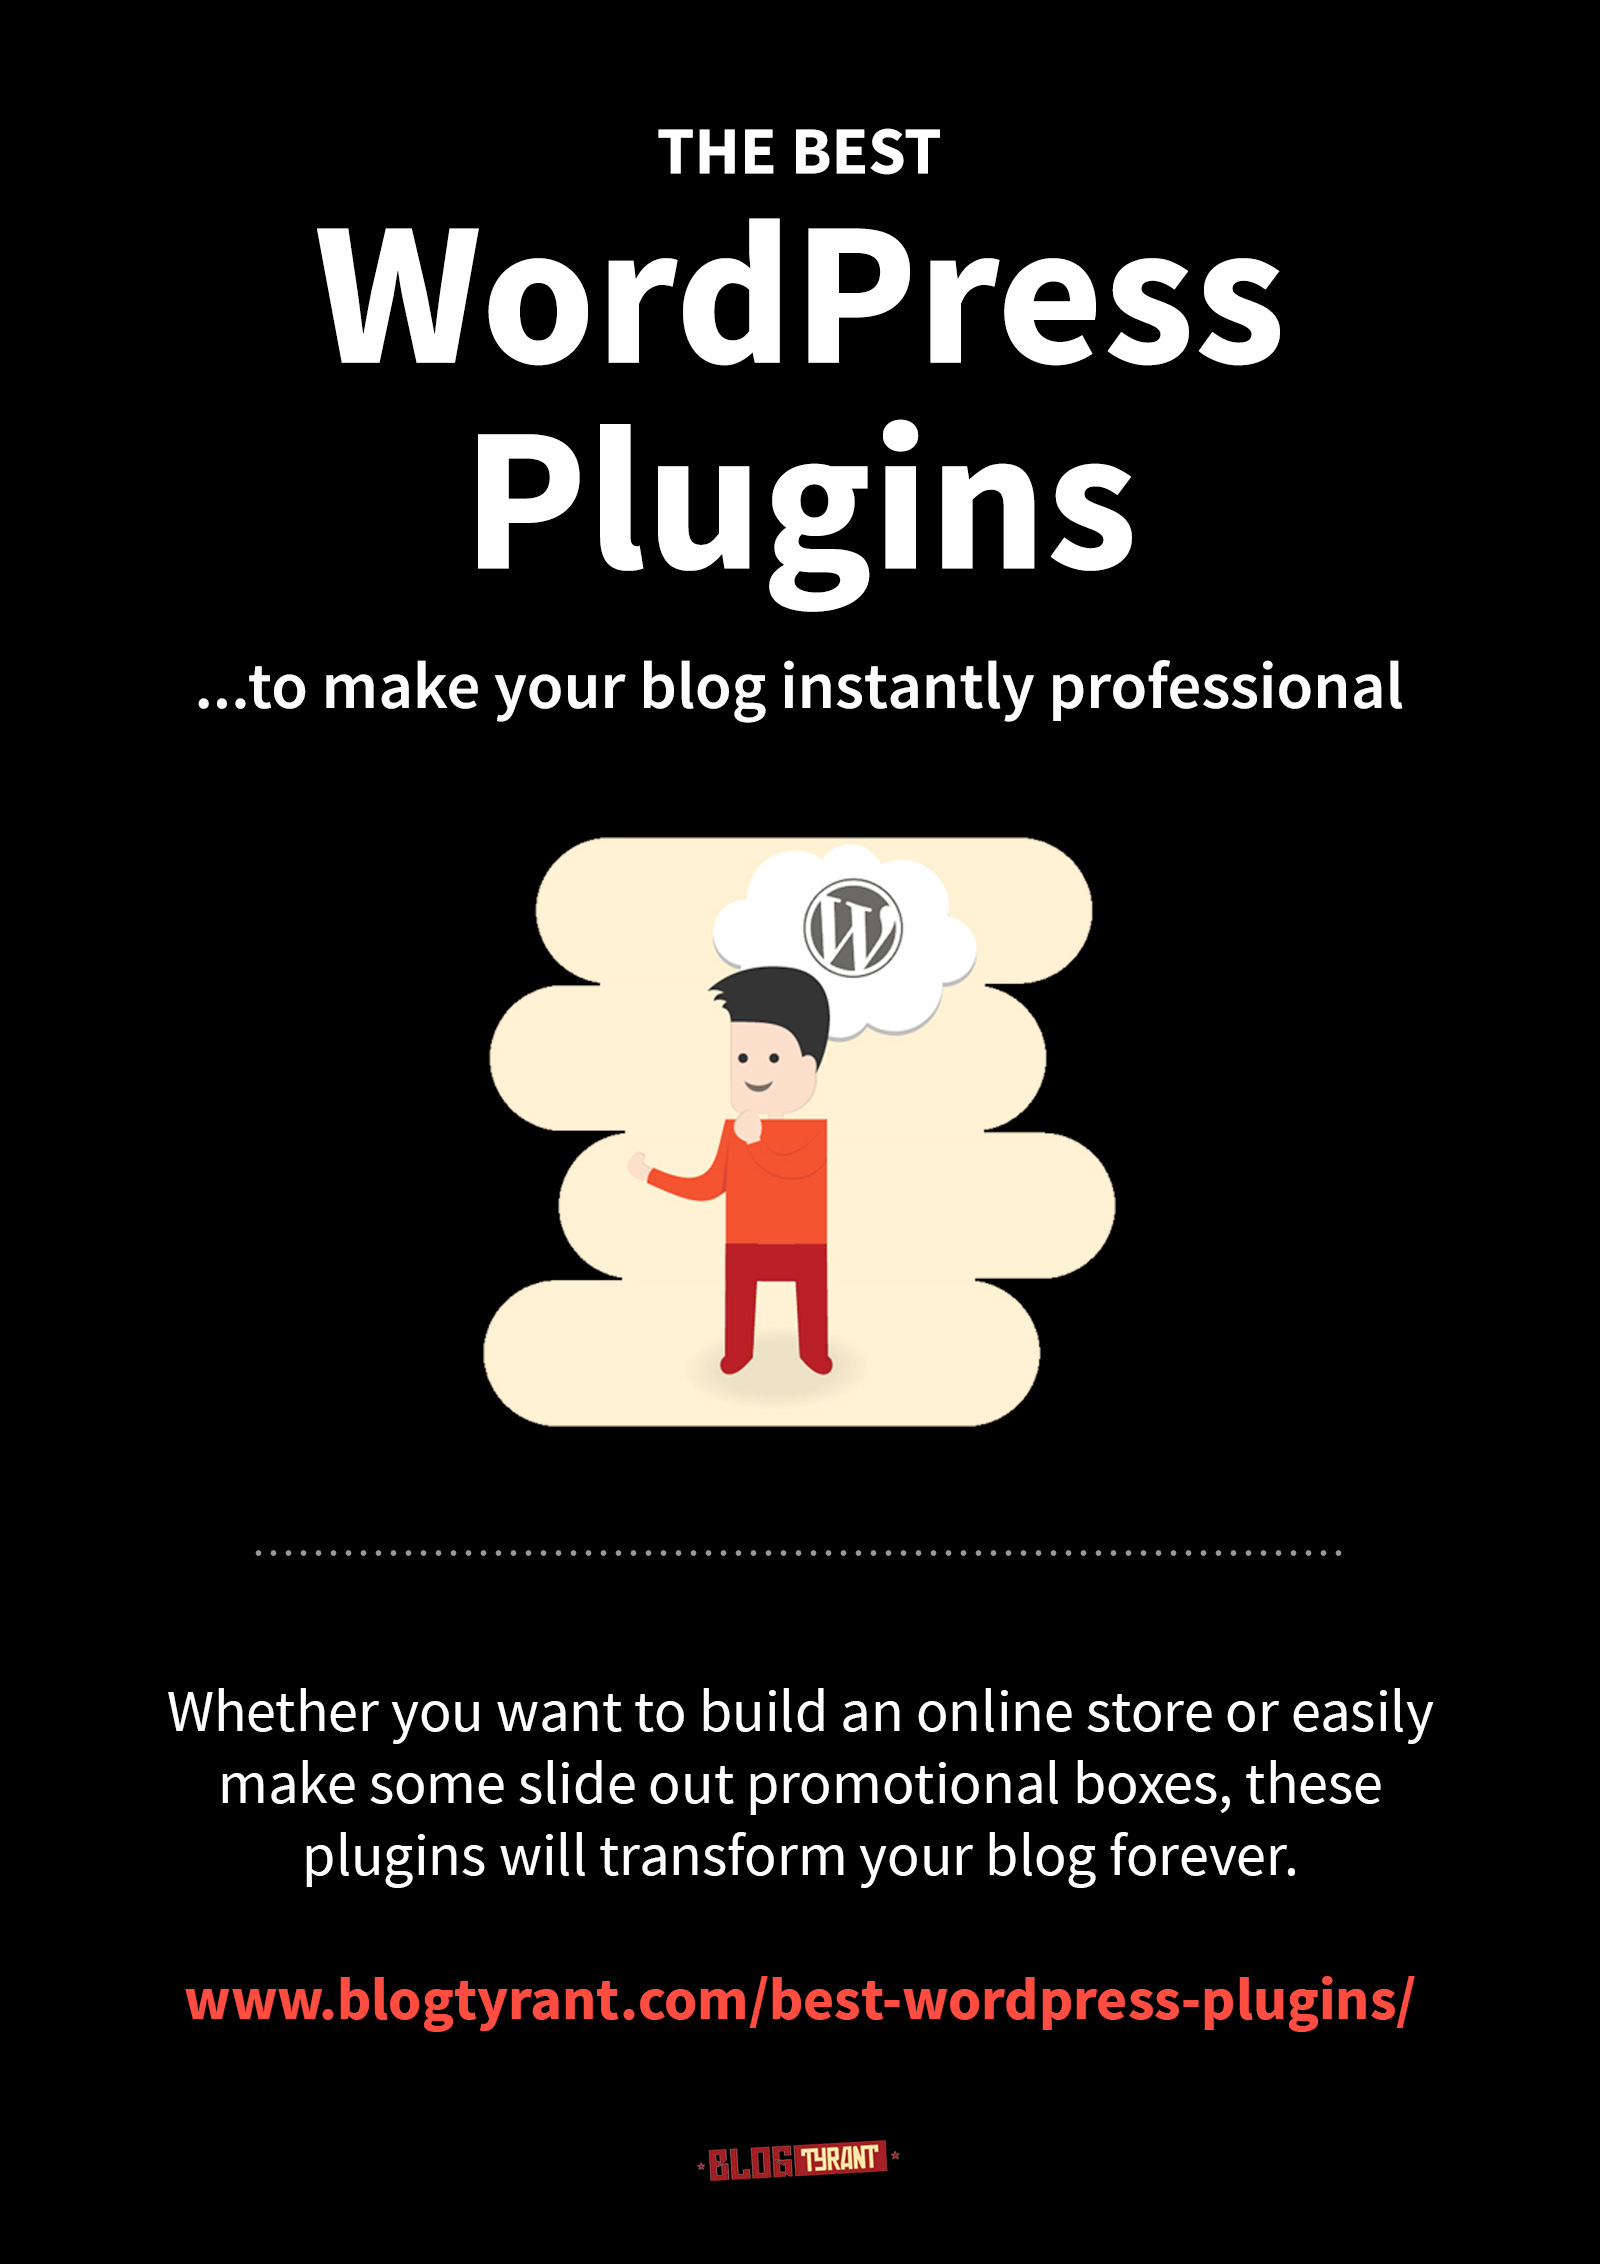 14 of the Best WordPress Plugins to Make Your Blog More Professional